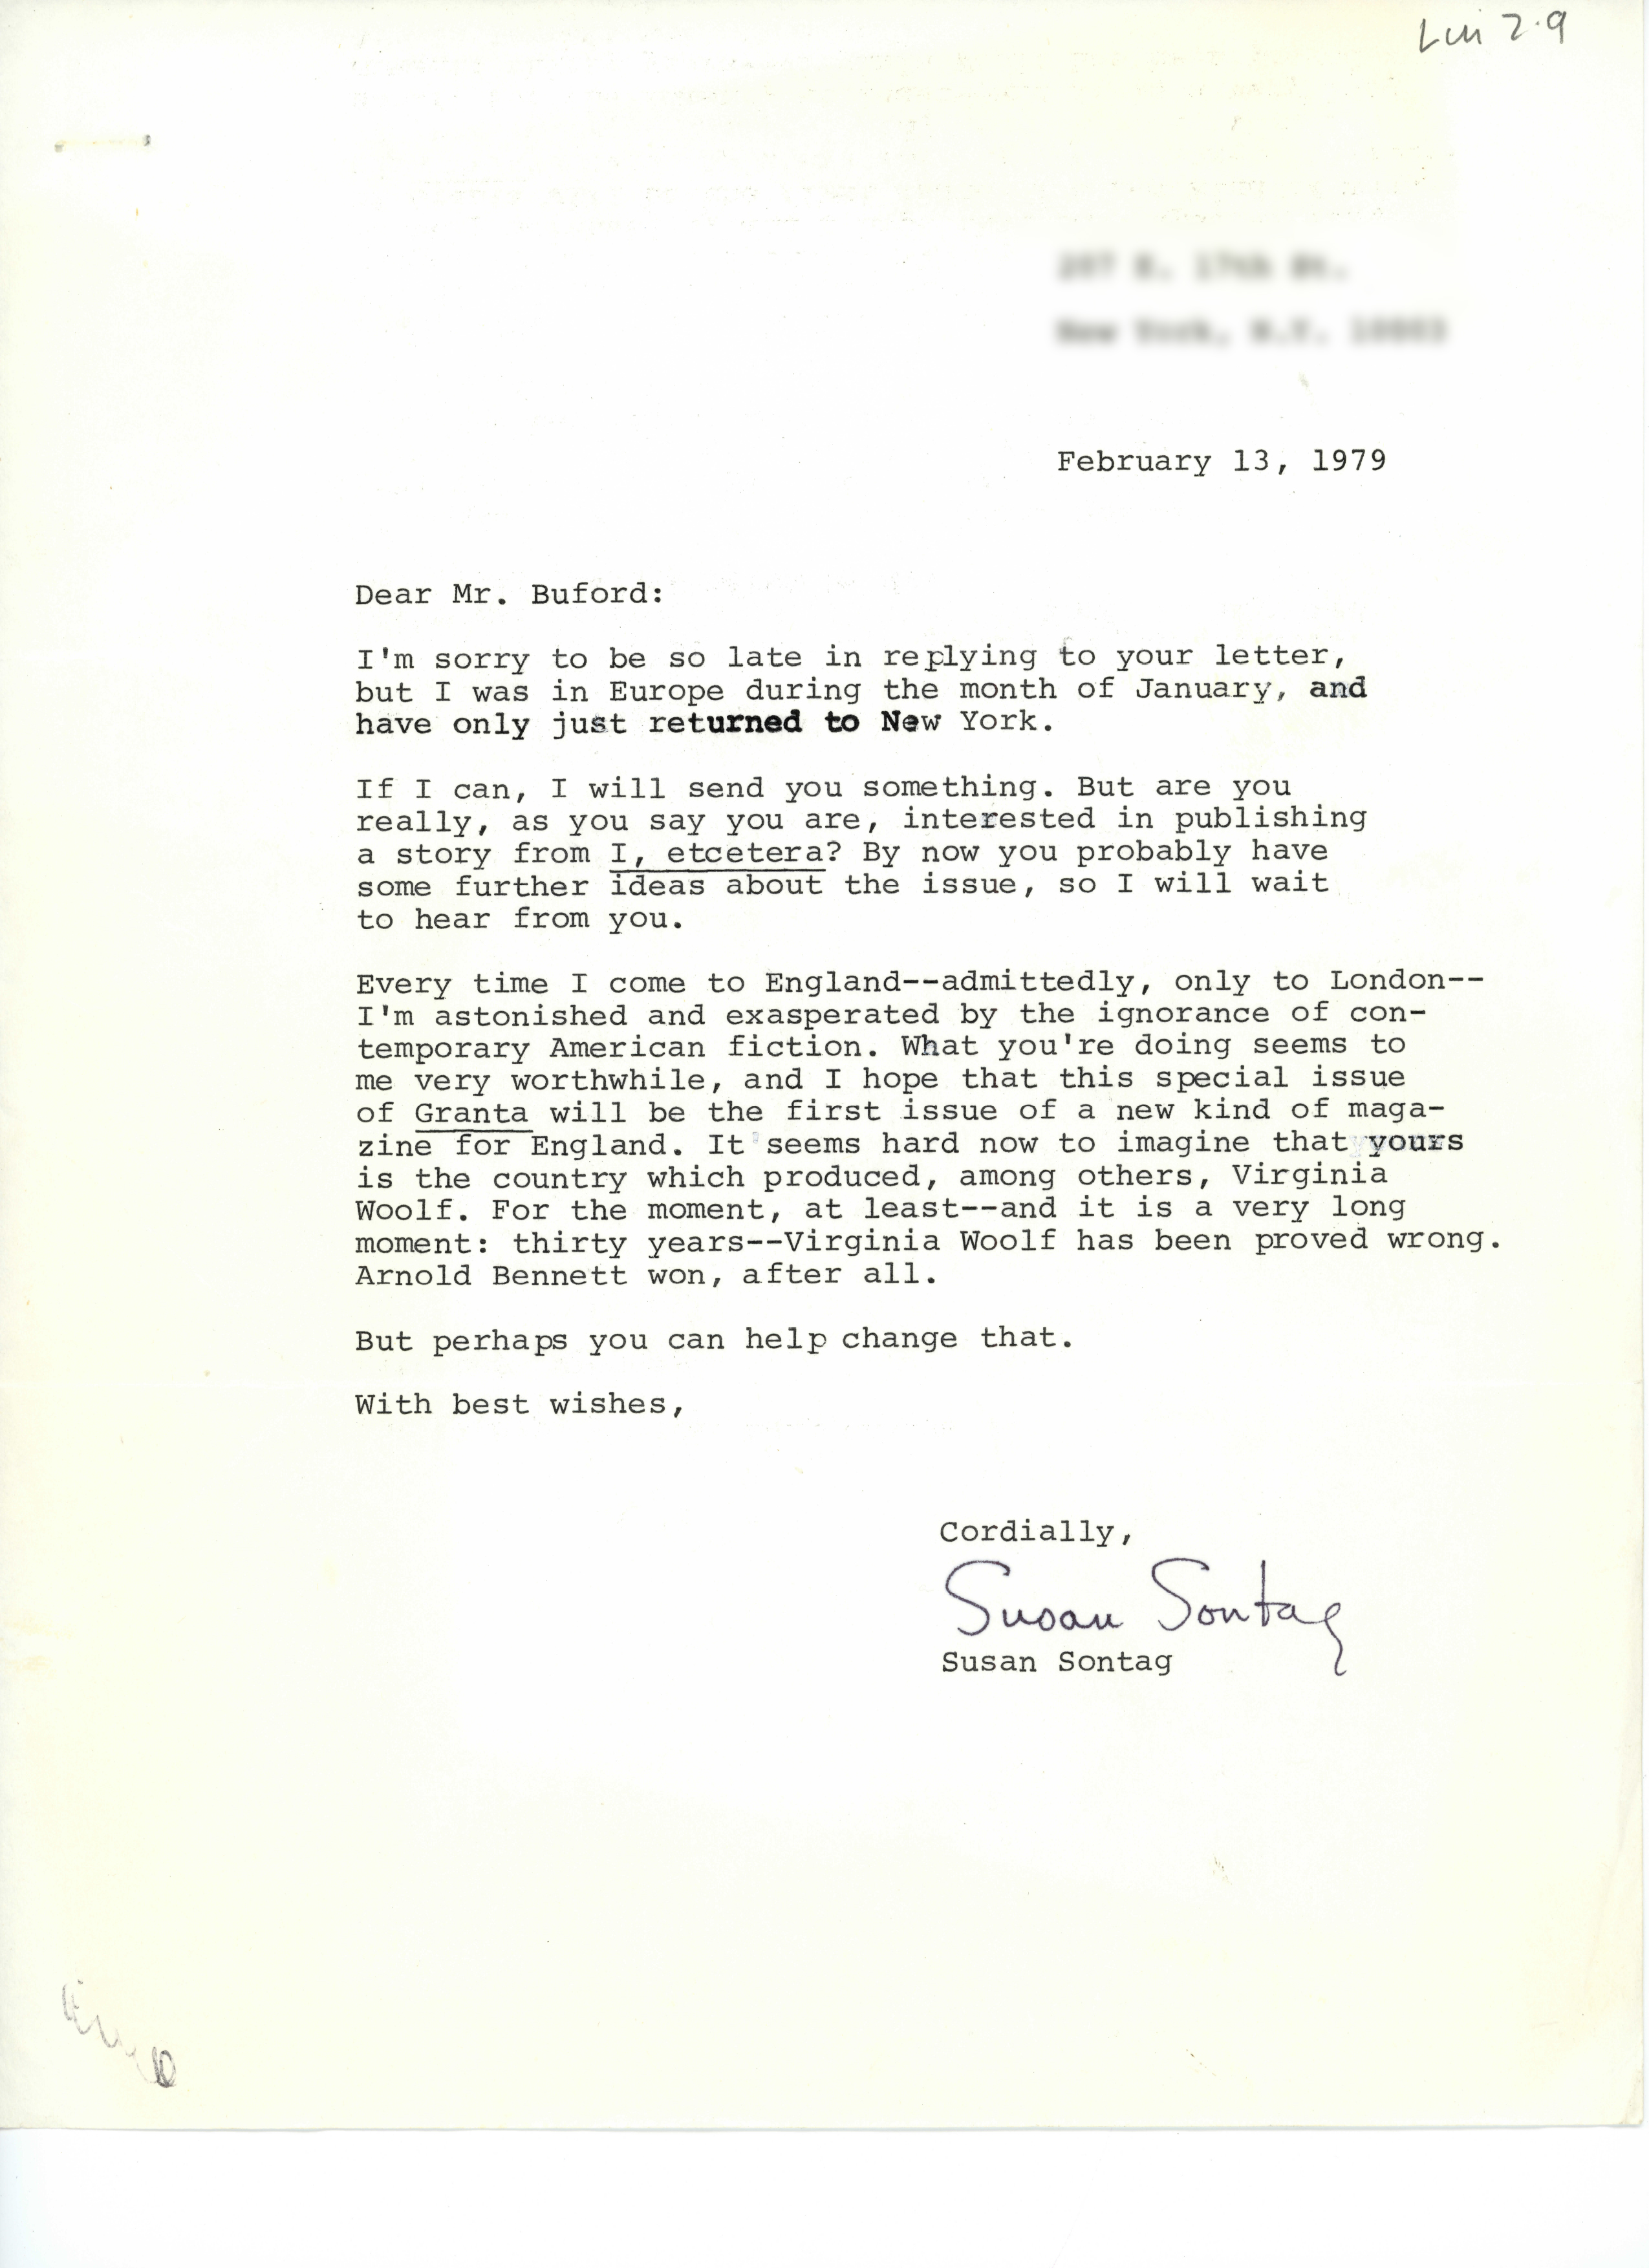 Letter to Granta by Susan Sontag © 1979, The Estate of Susan Sontag